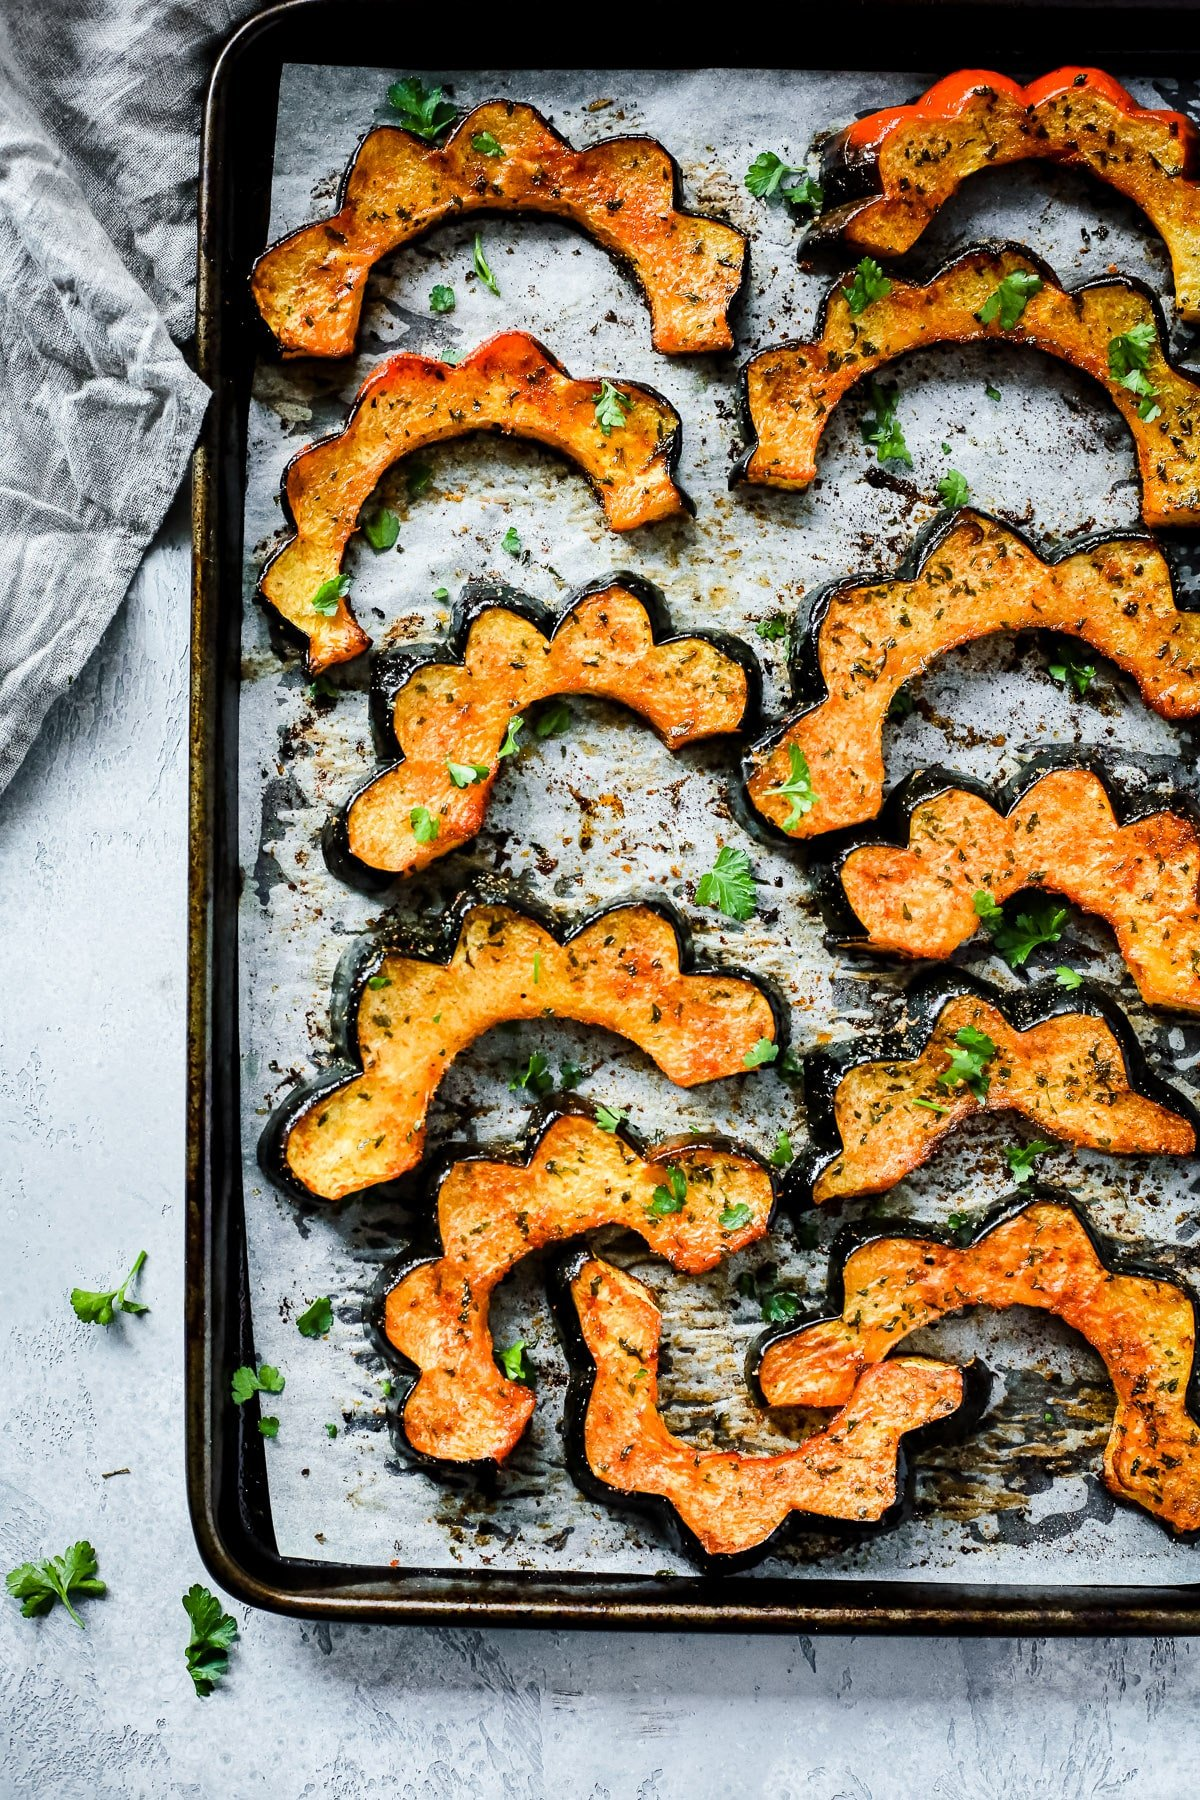 How to make winter squash in the oven